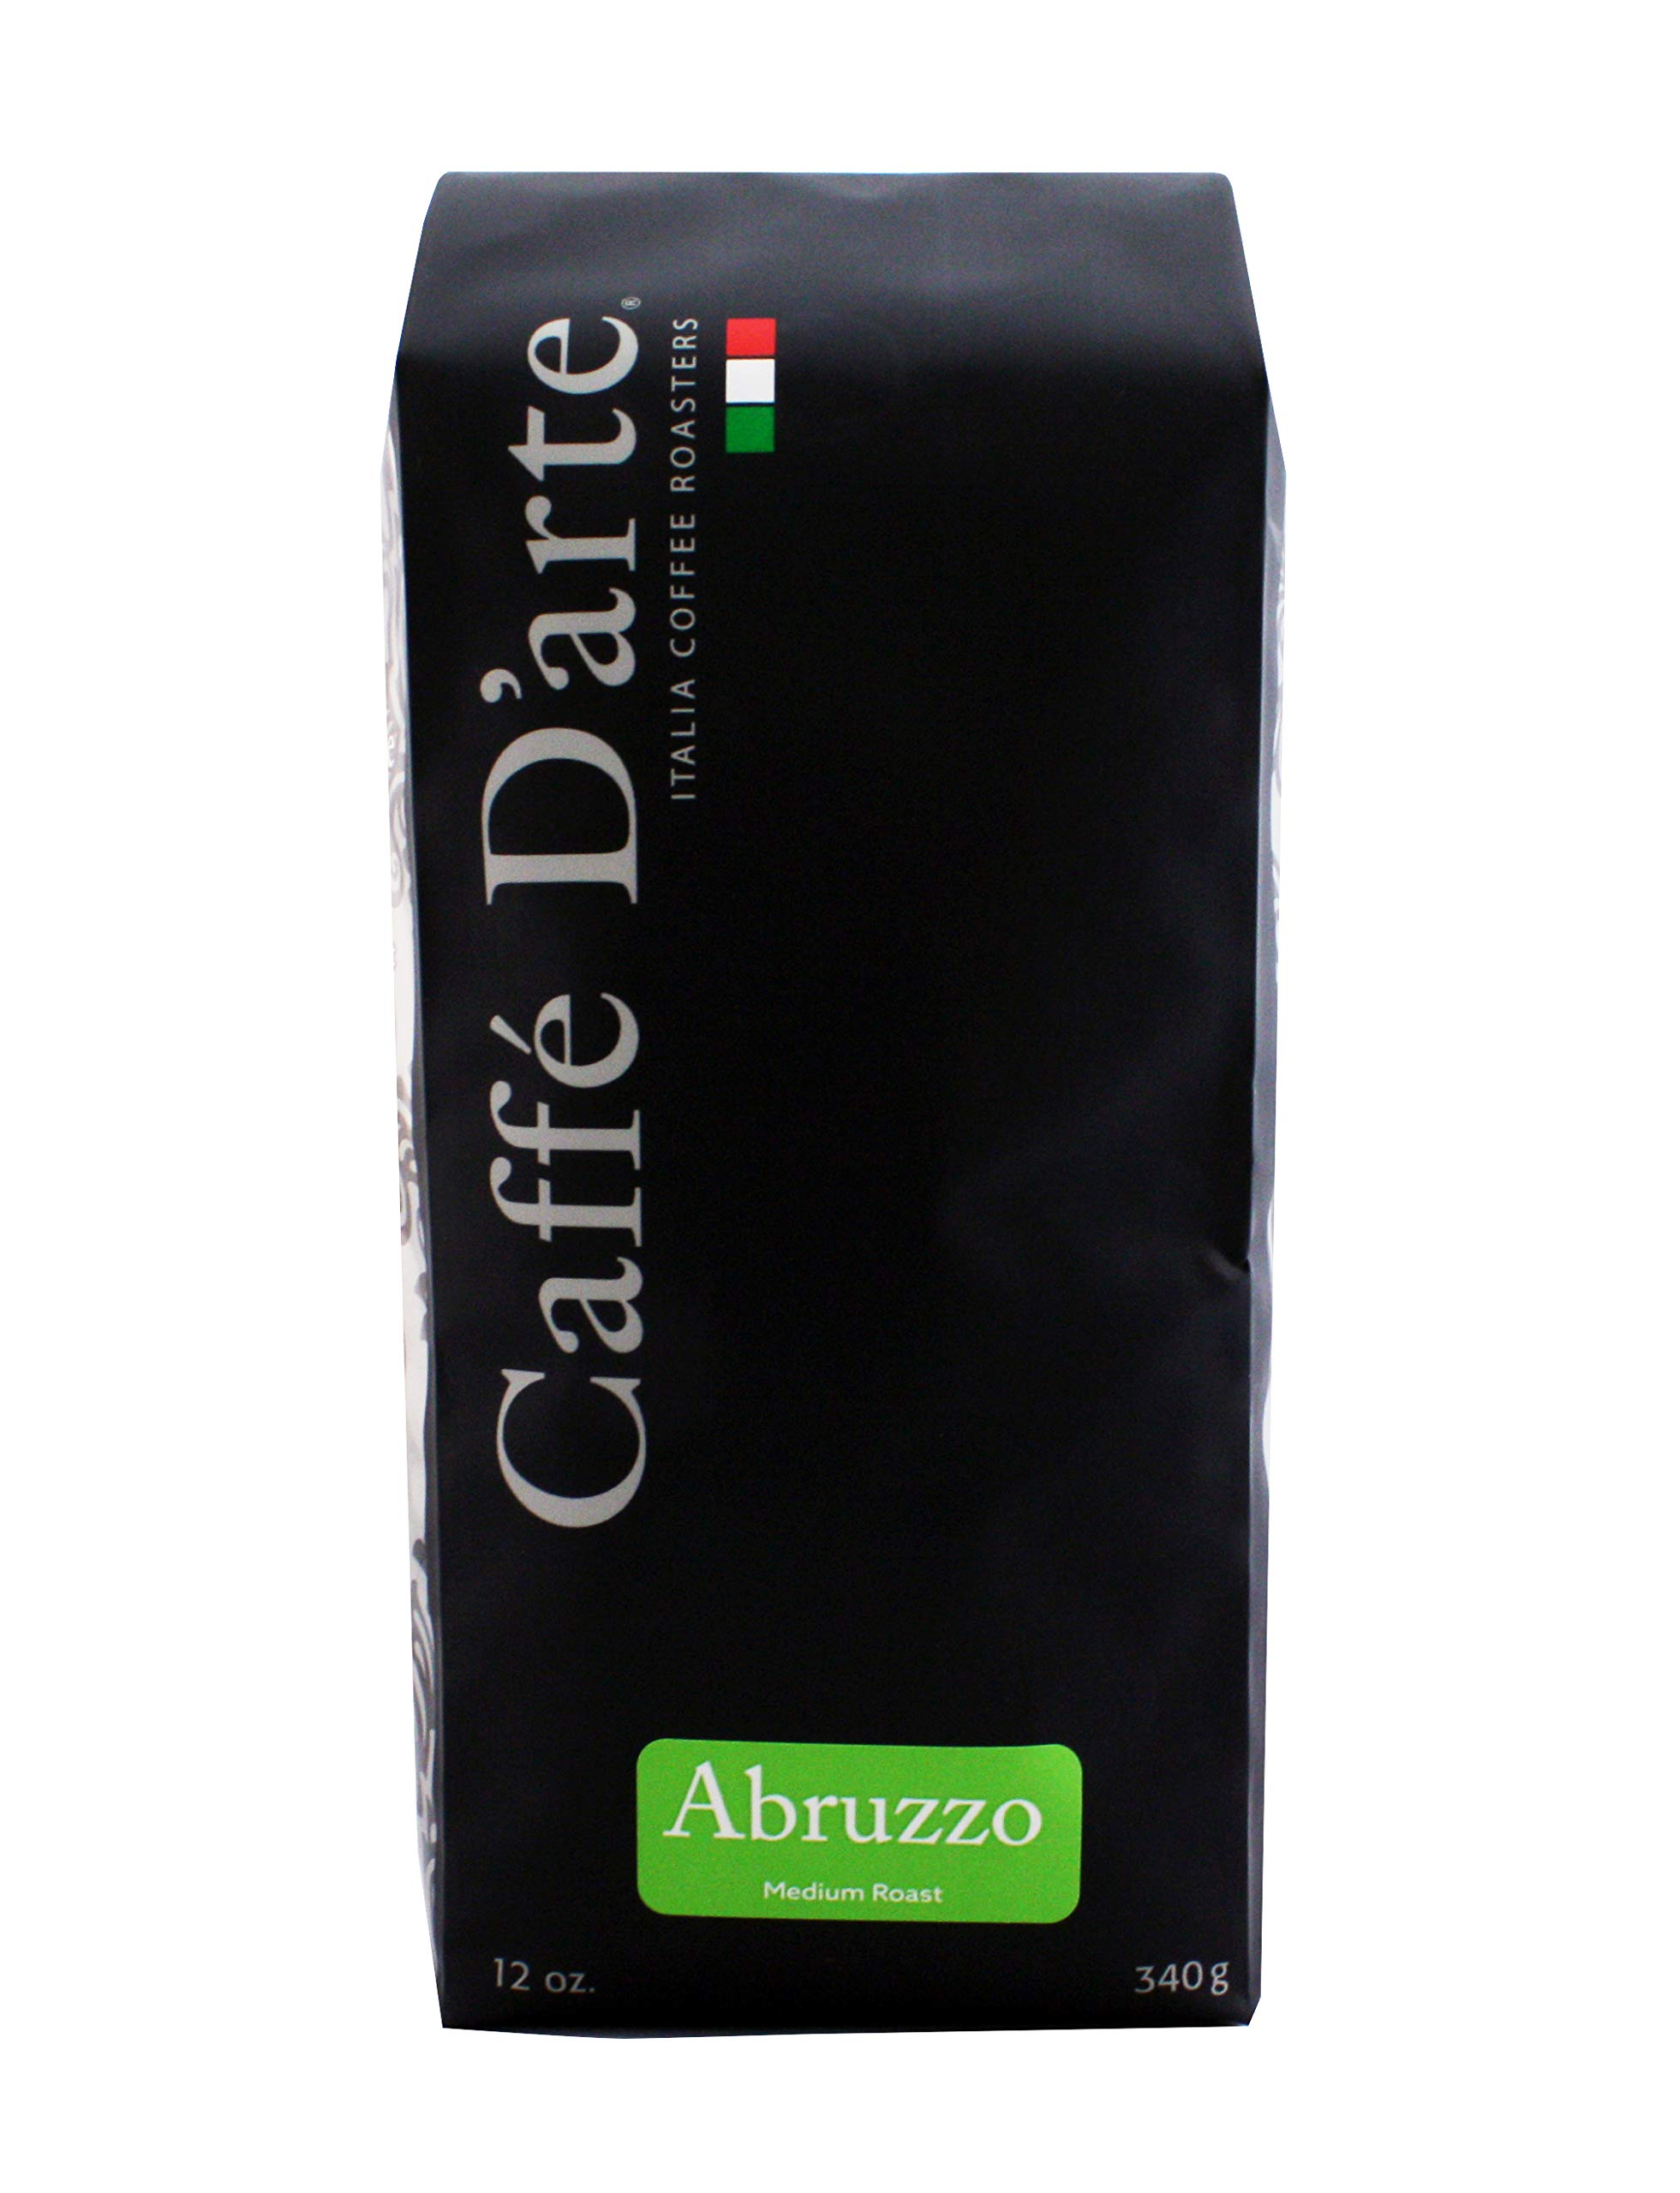 Caffé D'arte - Abruzzo Blend Gourmet Coffee, Medium Roast Coffee, Ground for Drip, Authentic Italian Style, Handcrafted in Small Batches, Kosher. 12oz Bag